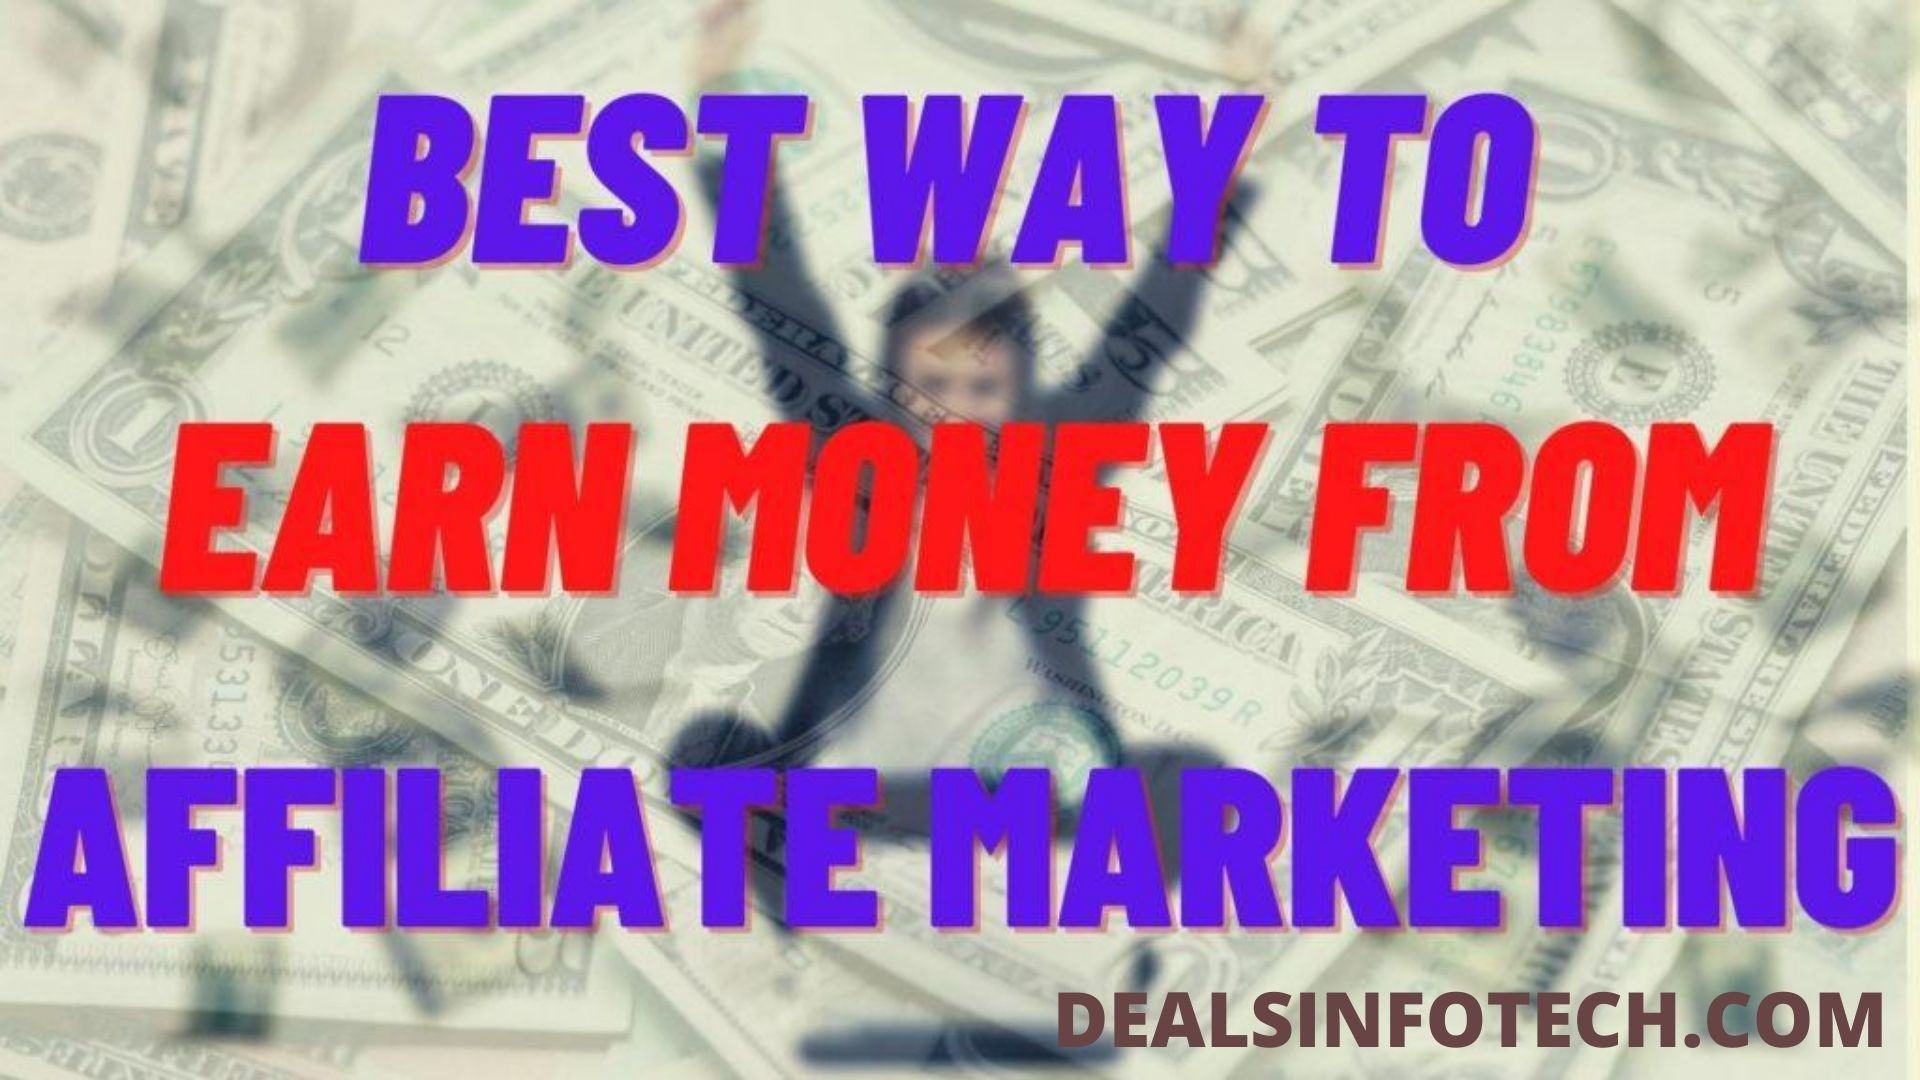 Best Way To Earn Money from Affiliate Marketing 2020